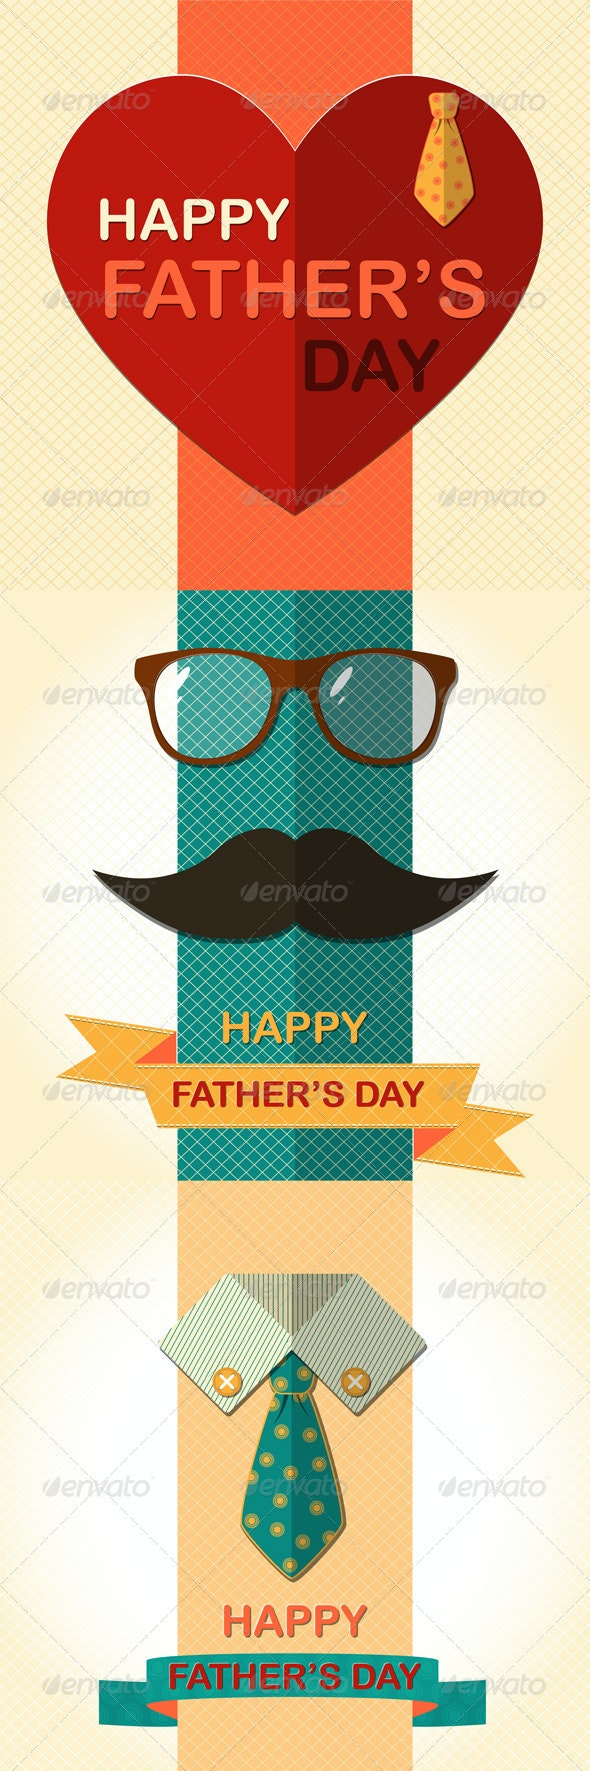 Father's Day Greetings Cards - Seasons/Holidays Conceptual